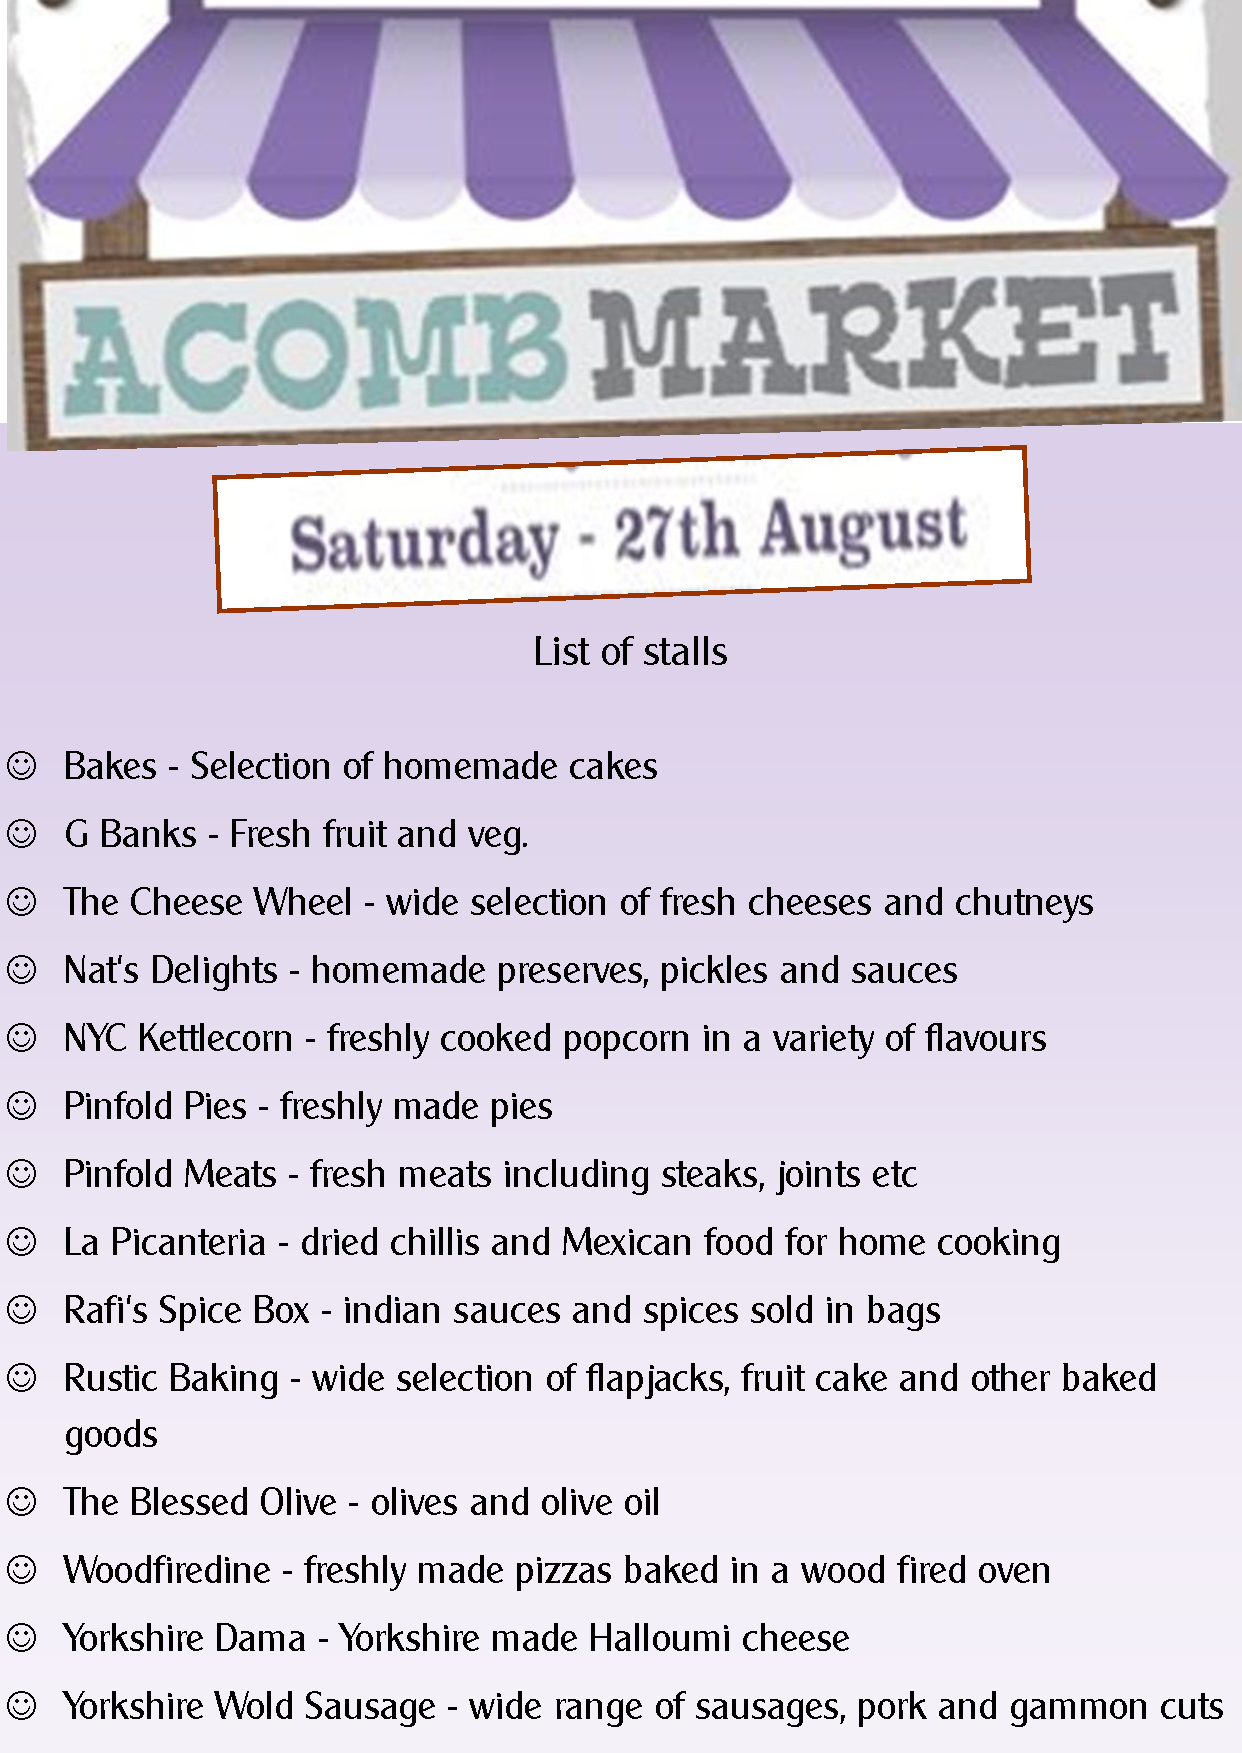 list of stalls August 2016 Acomb Market